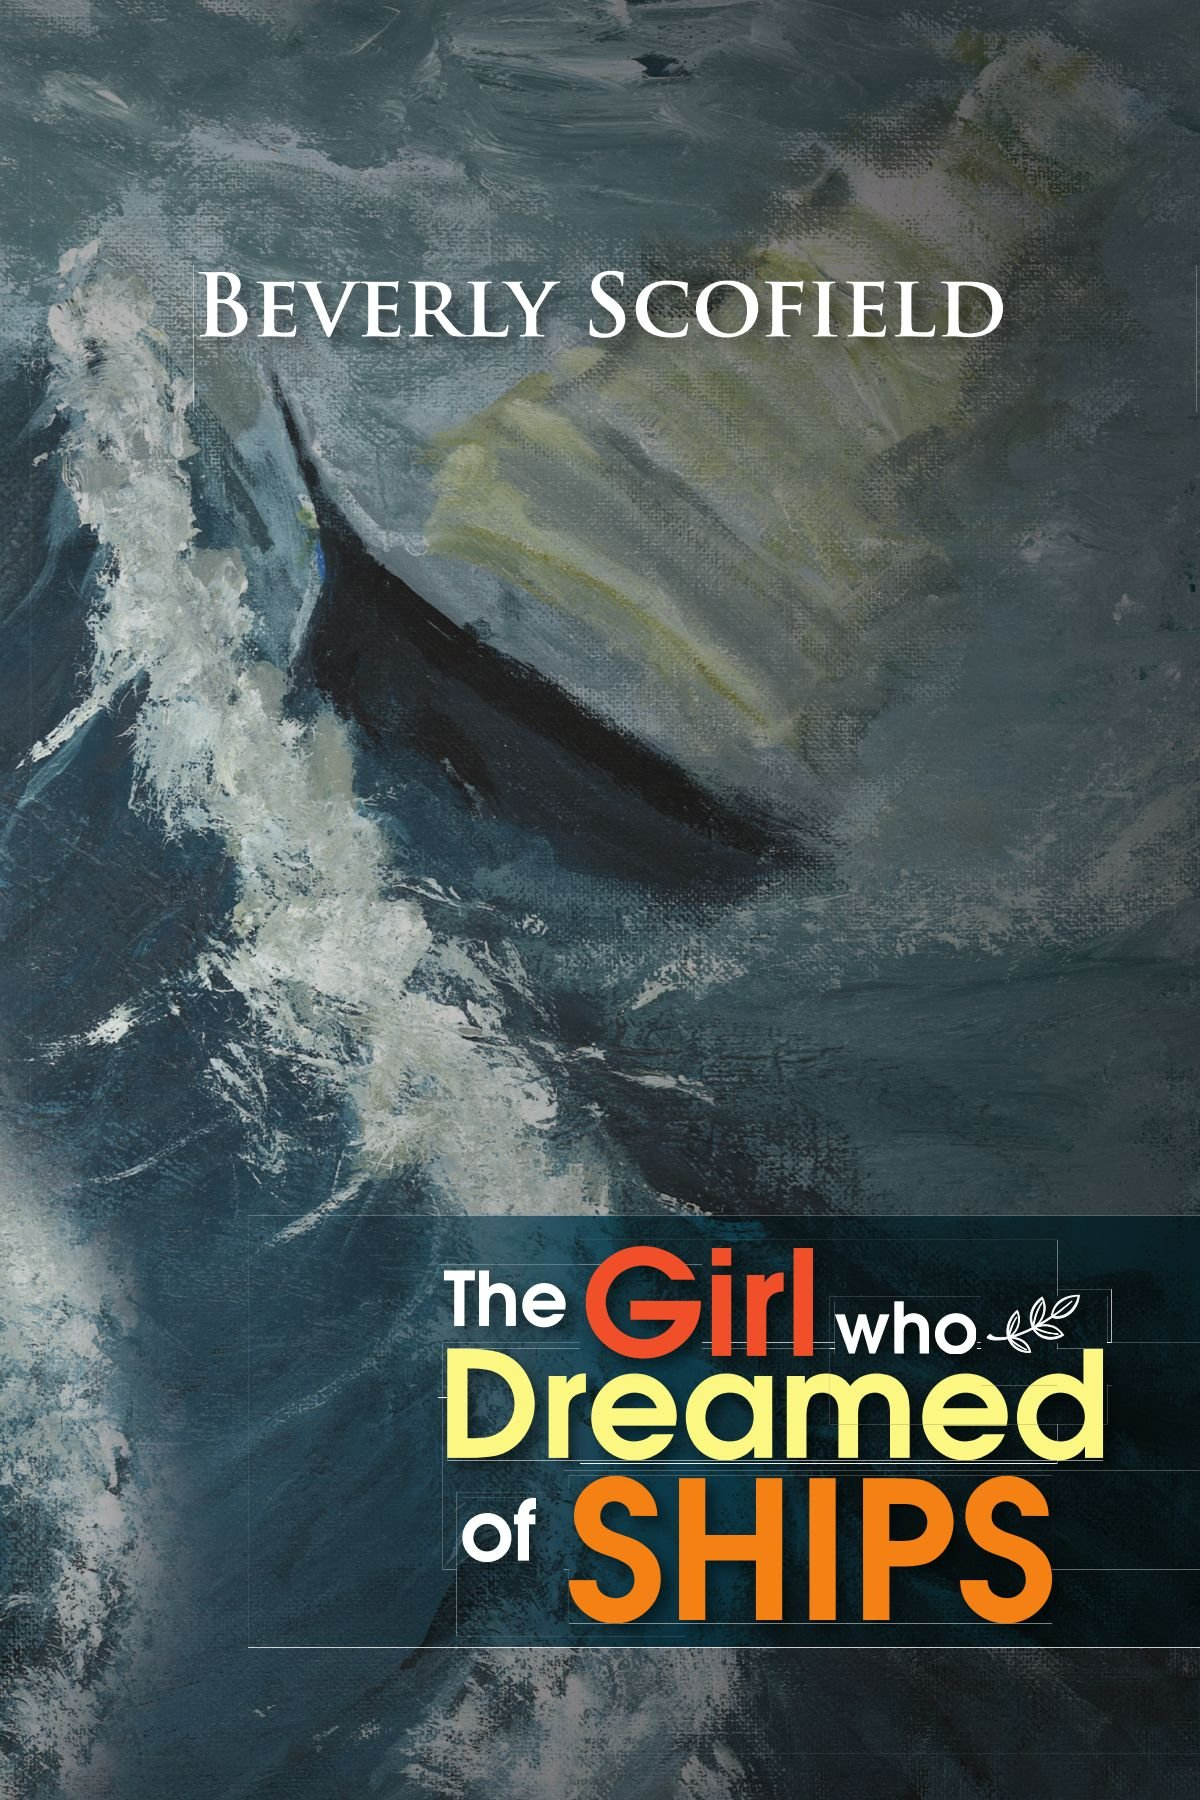 The girl who dreamed of ships beverly scofield 9781469165417 the girl who dreamed of ships beverly scofield 9781469165417 amazon books nvjuhfo Gallery